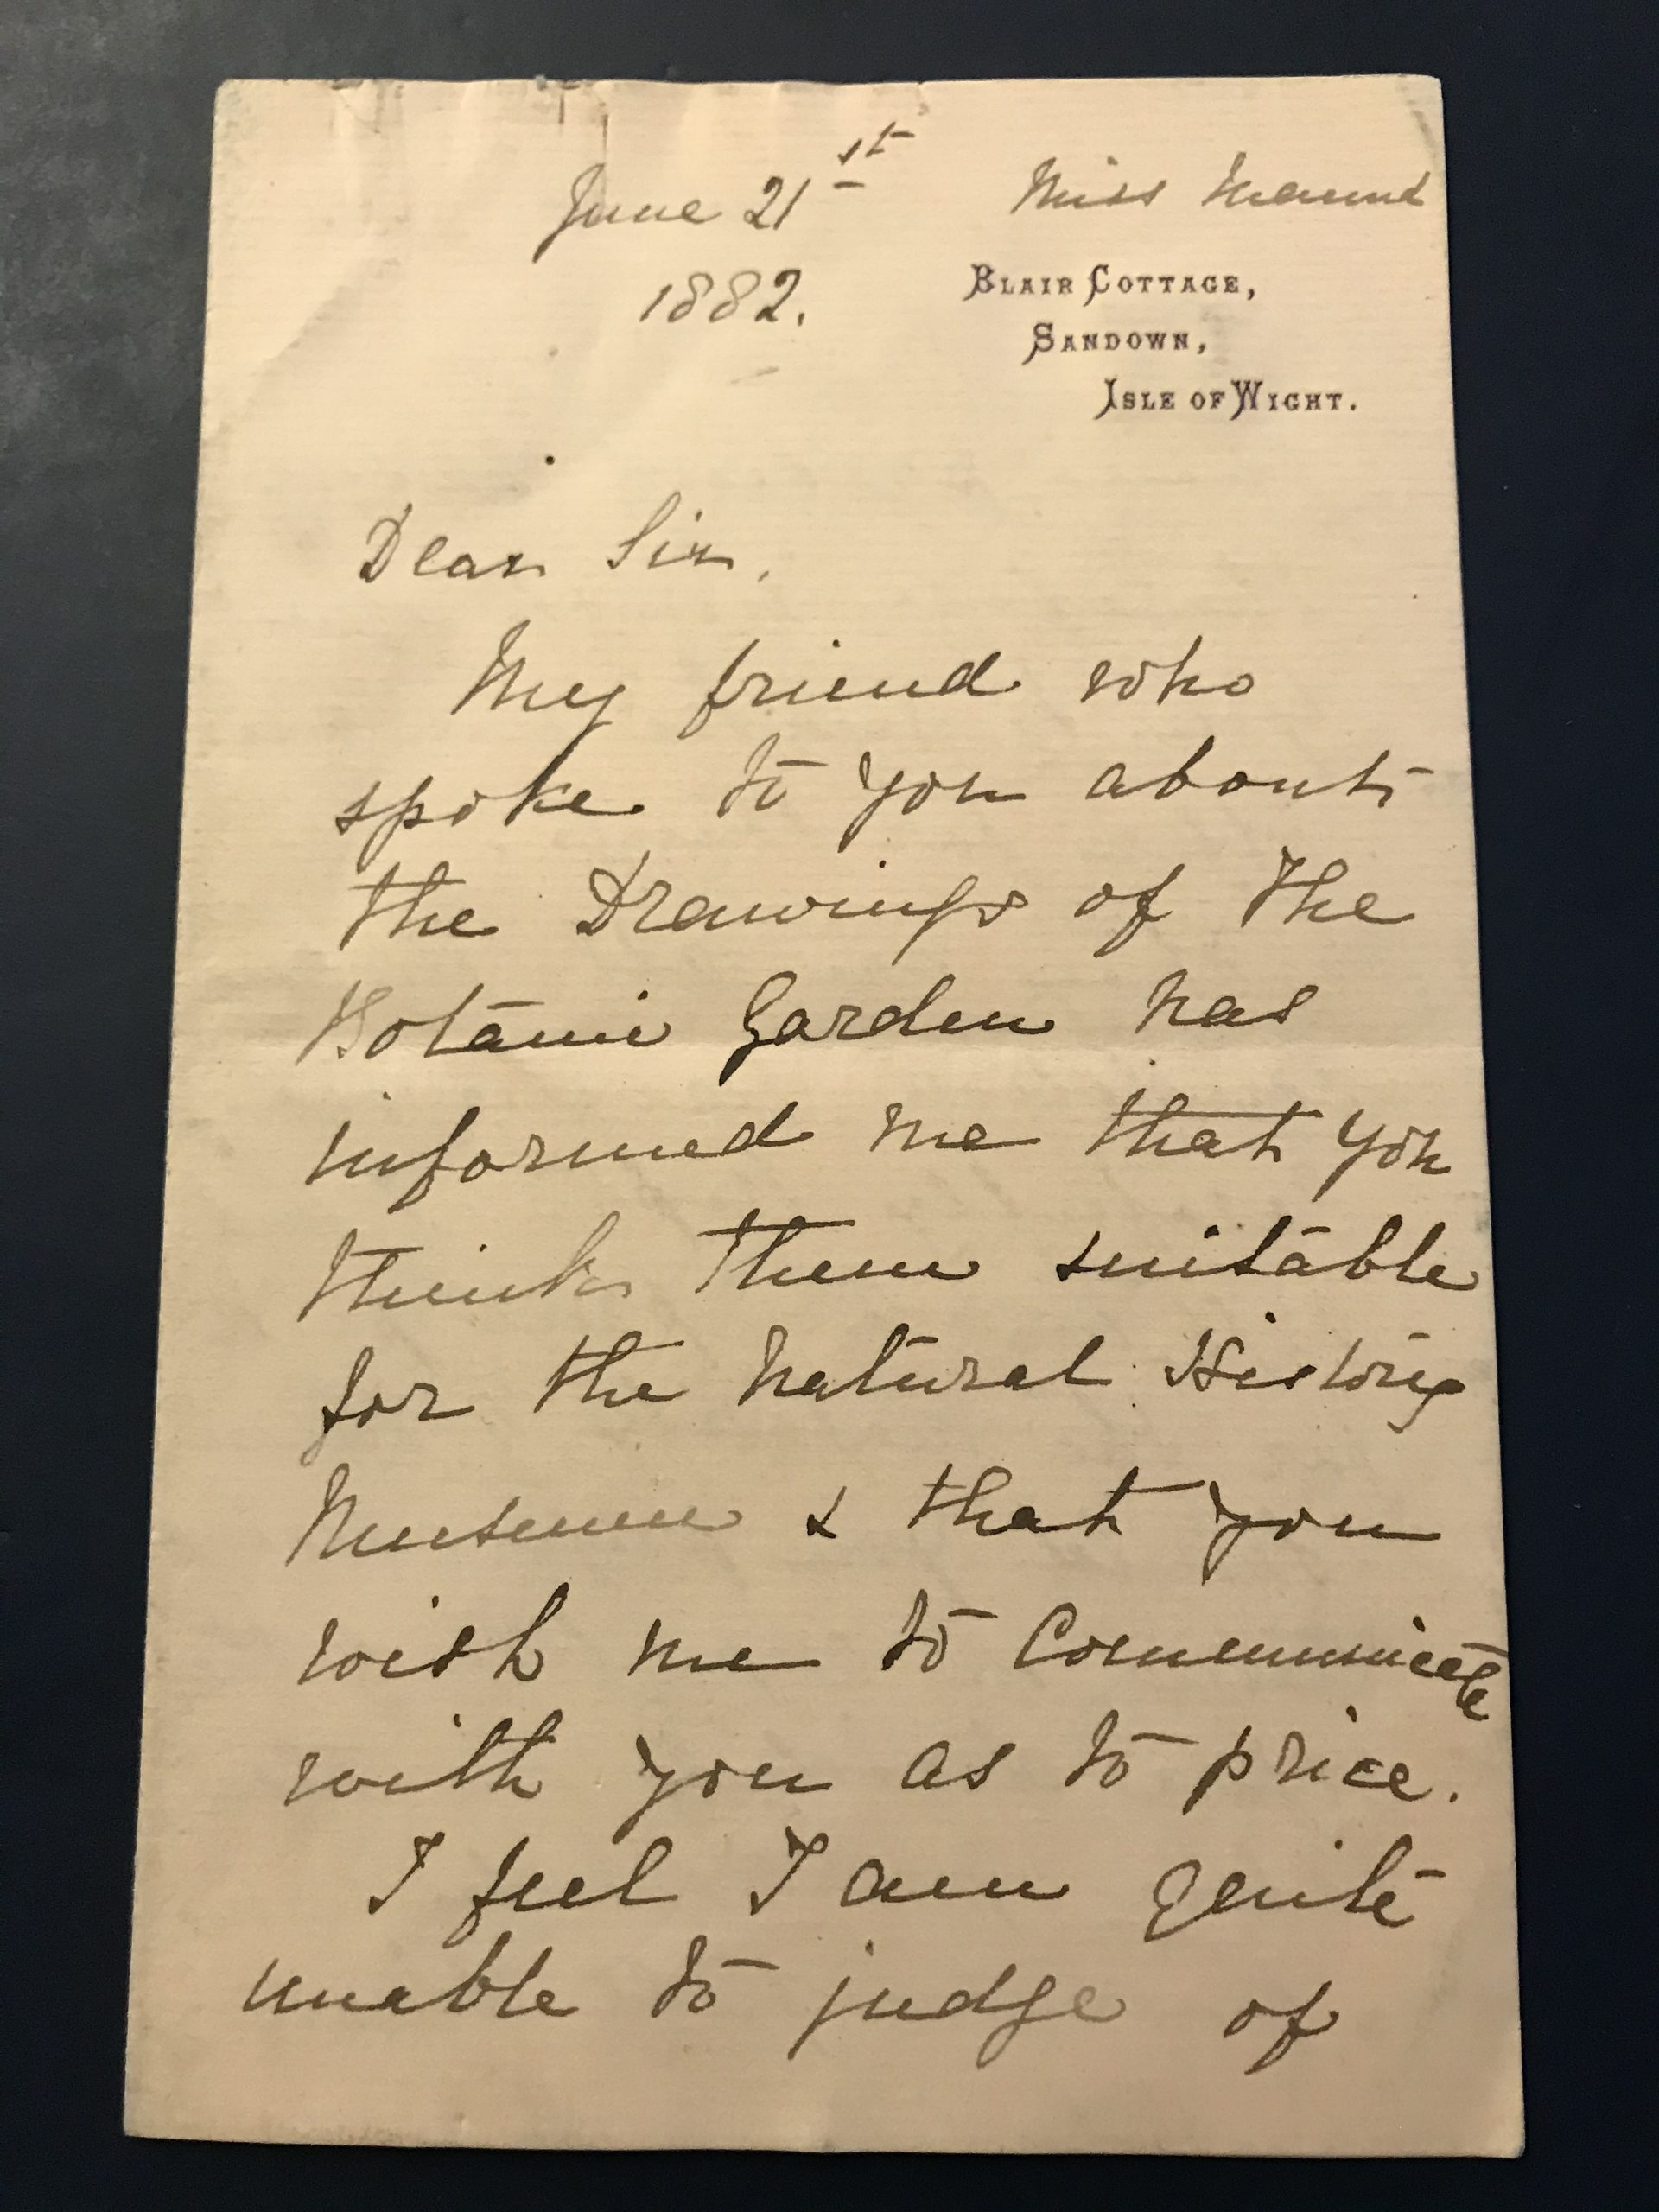 Letter from Sarah Maund dated June 21st 1882 to the Keeper of Botanical Dept. at the Natural History Museum